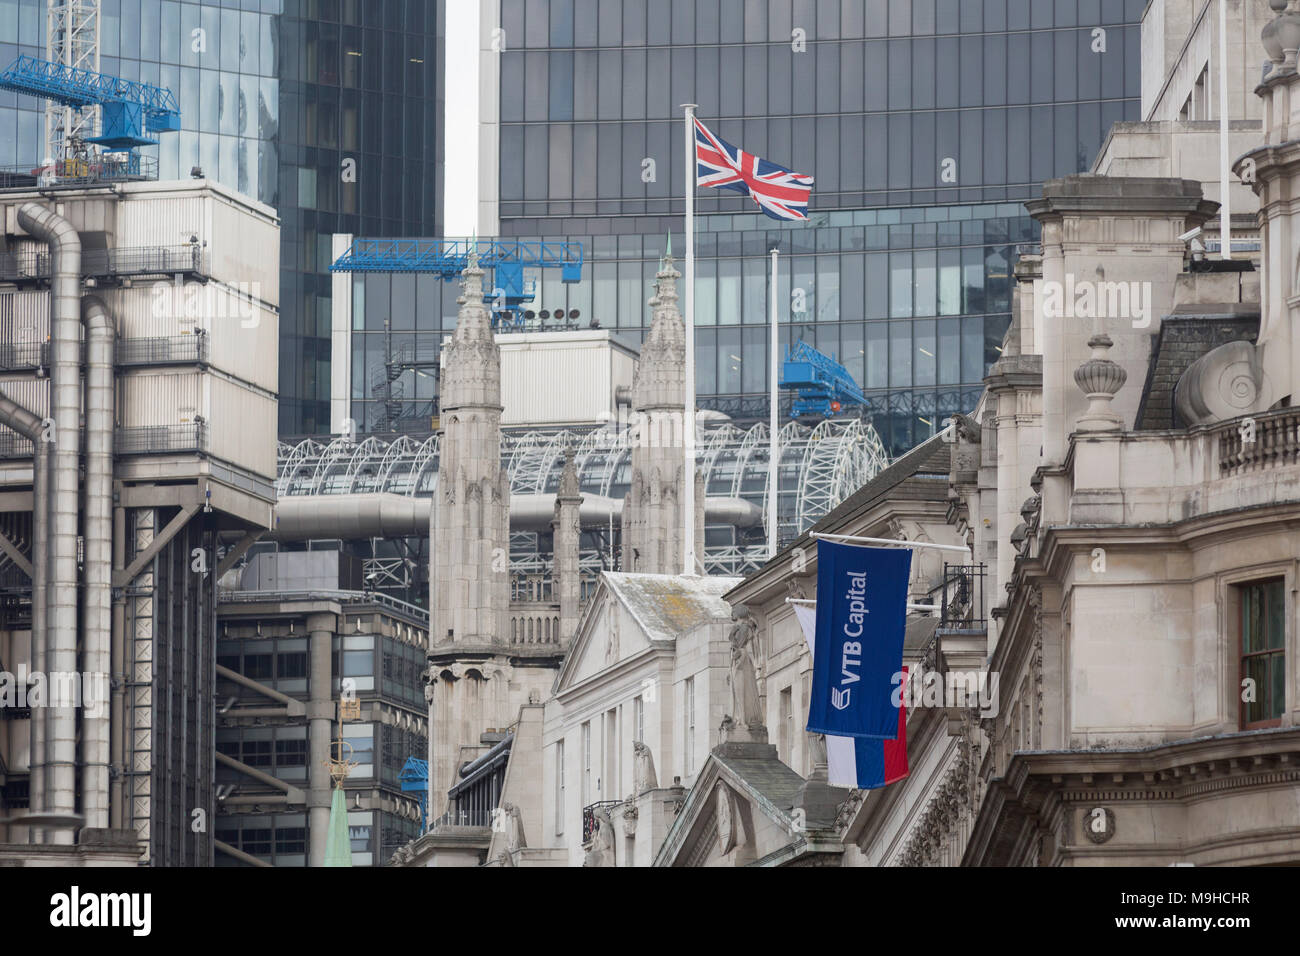 The flags of the Russian Federation and Russian investment Bank VTB Capital hang over banks and other financial institutions in the City of London, the capital's financial district (aka The Square Mile), on 26th March, 2018, in London, England. VTB Capital operates in London, Singapore, Hong Kong, Sofia, New York, Zug and Frankfurt, with headquarters in Moscow. - Stock Image